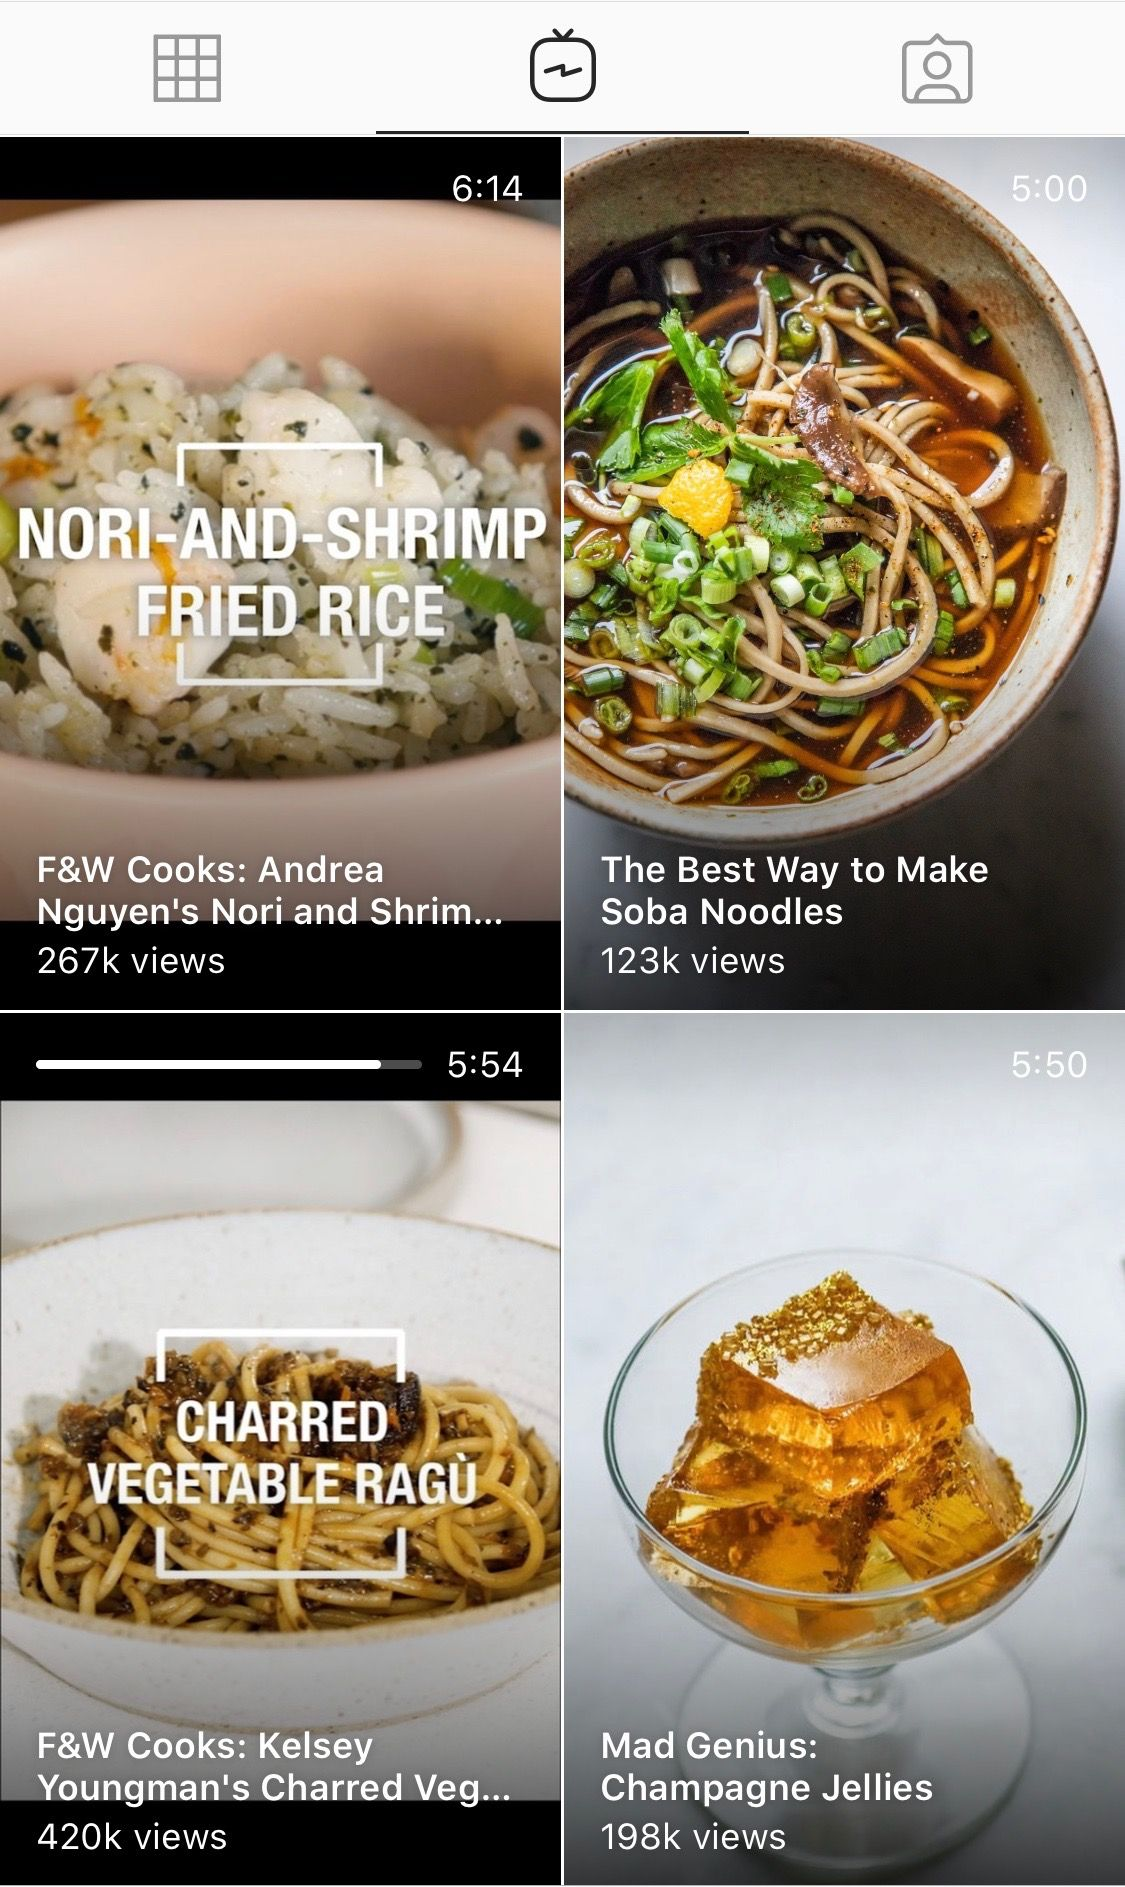 IGTV tab of @foodandwine